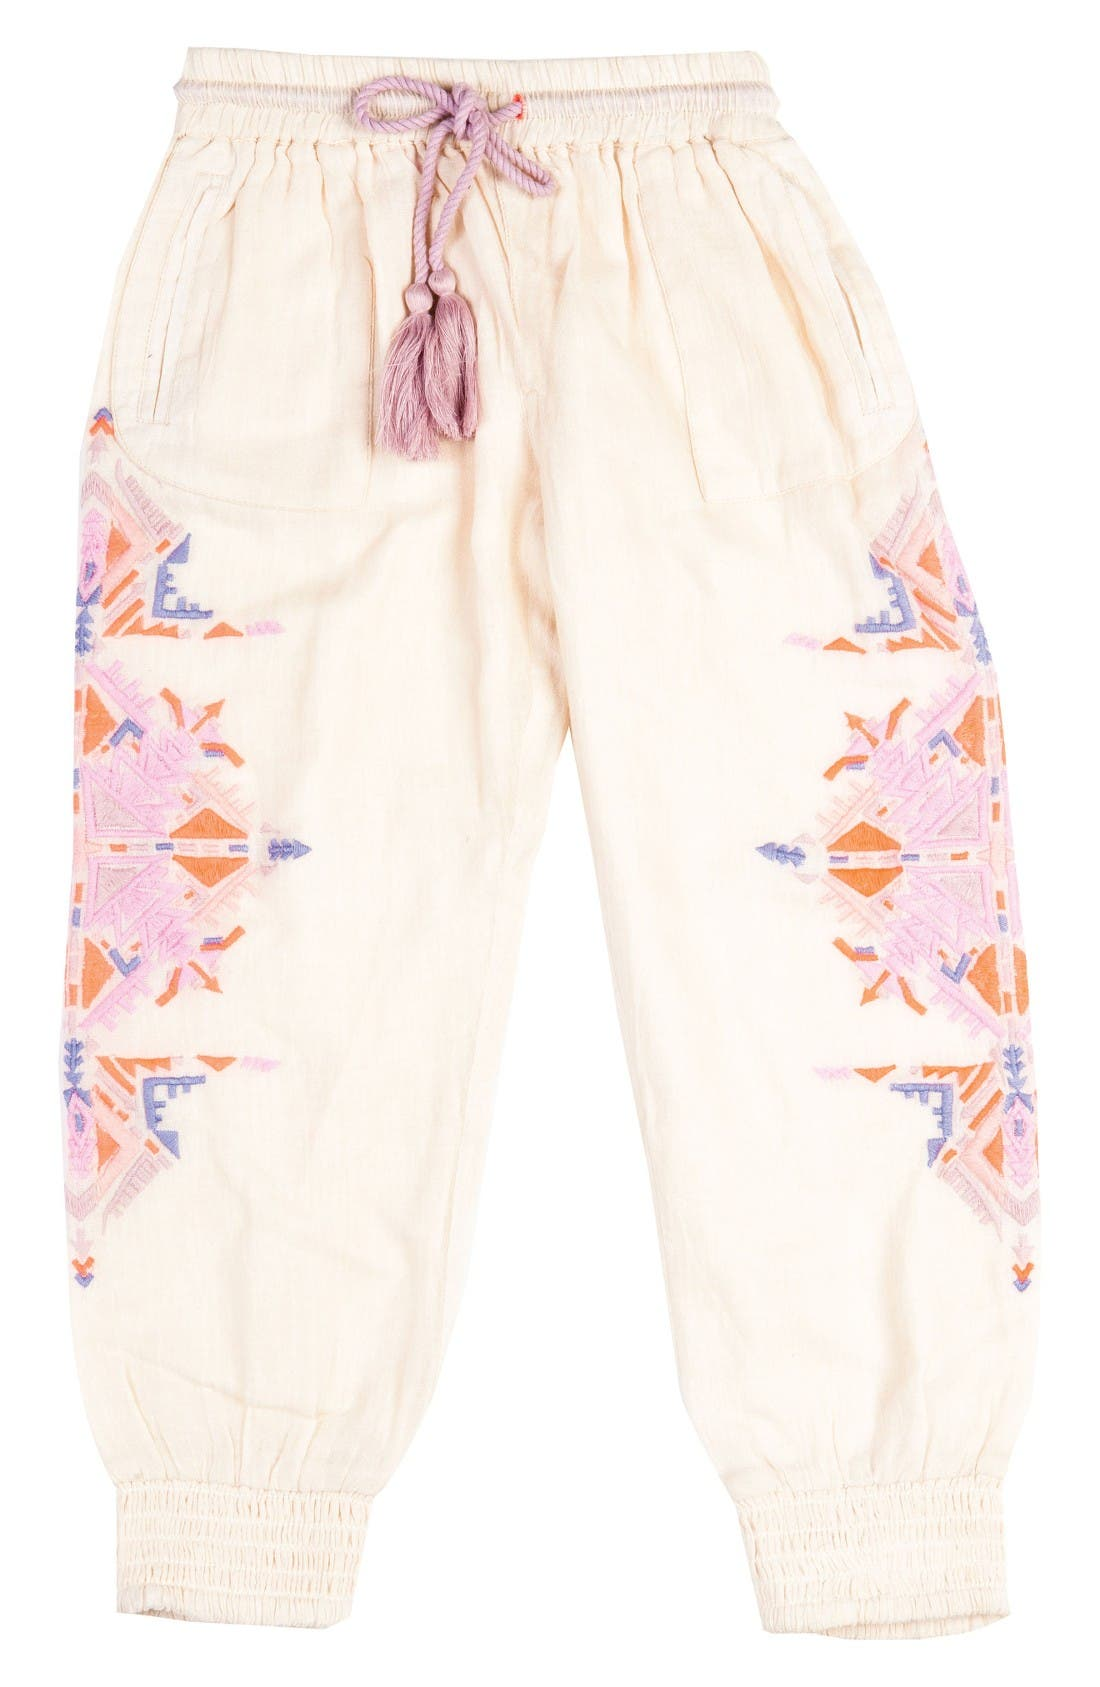 Bowie James Running Deer Embroidered Pants (Toddler Girls, Little Girls & Big Girls)